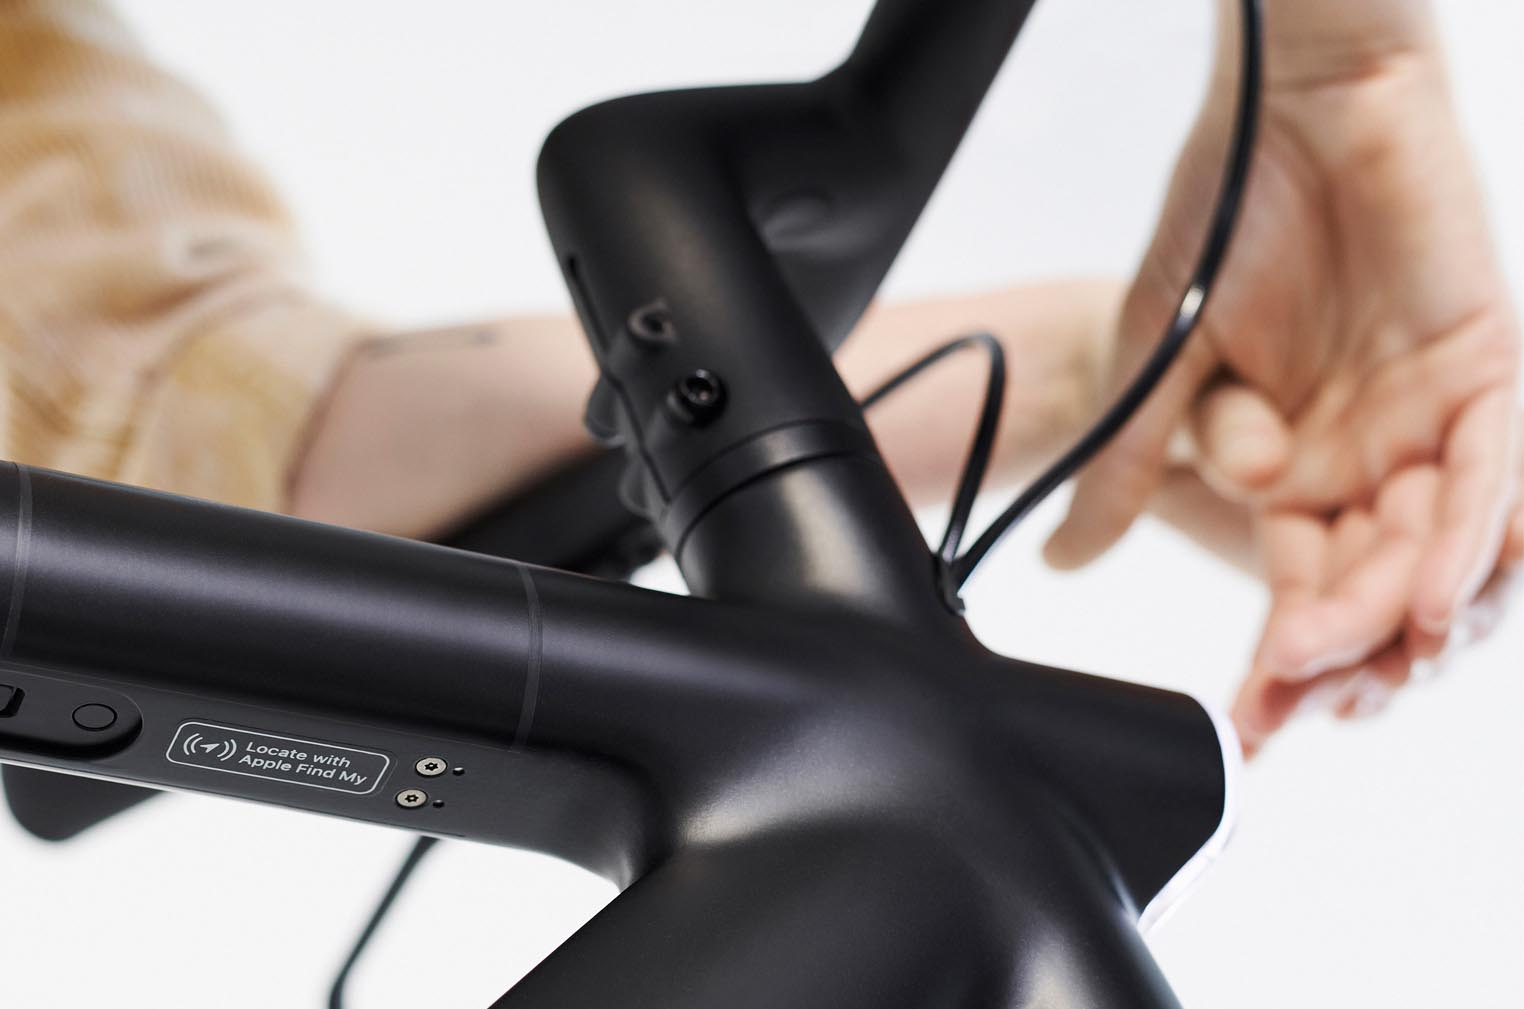 VanMoof Locate with Apple Find My